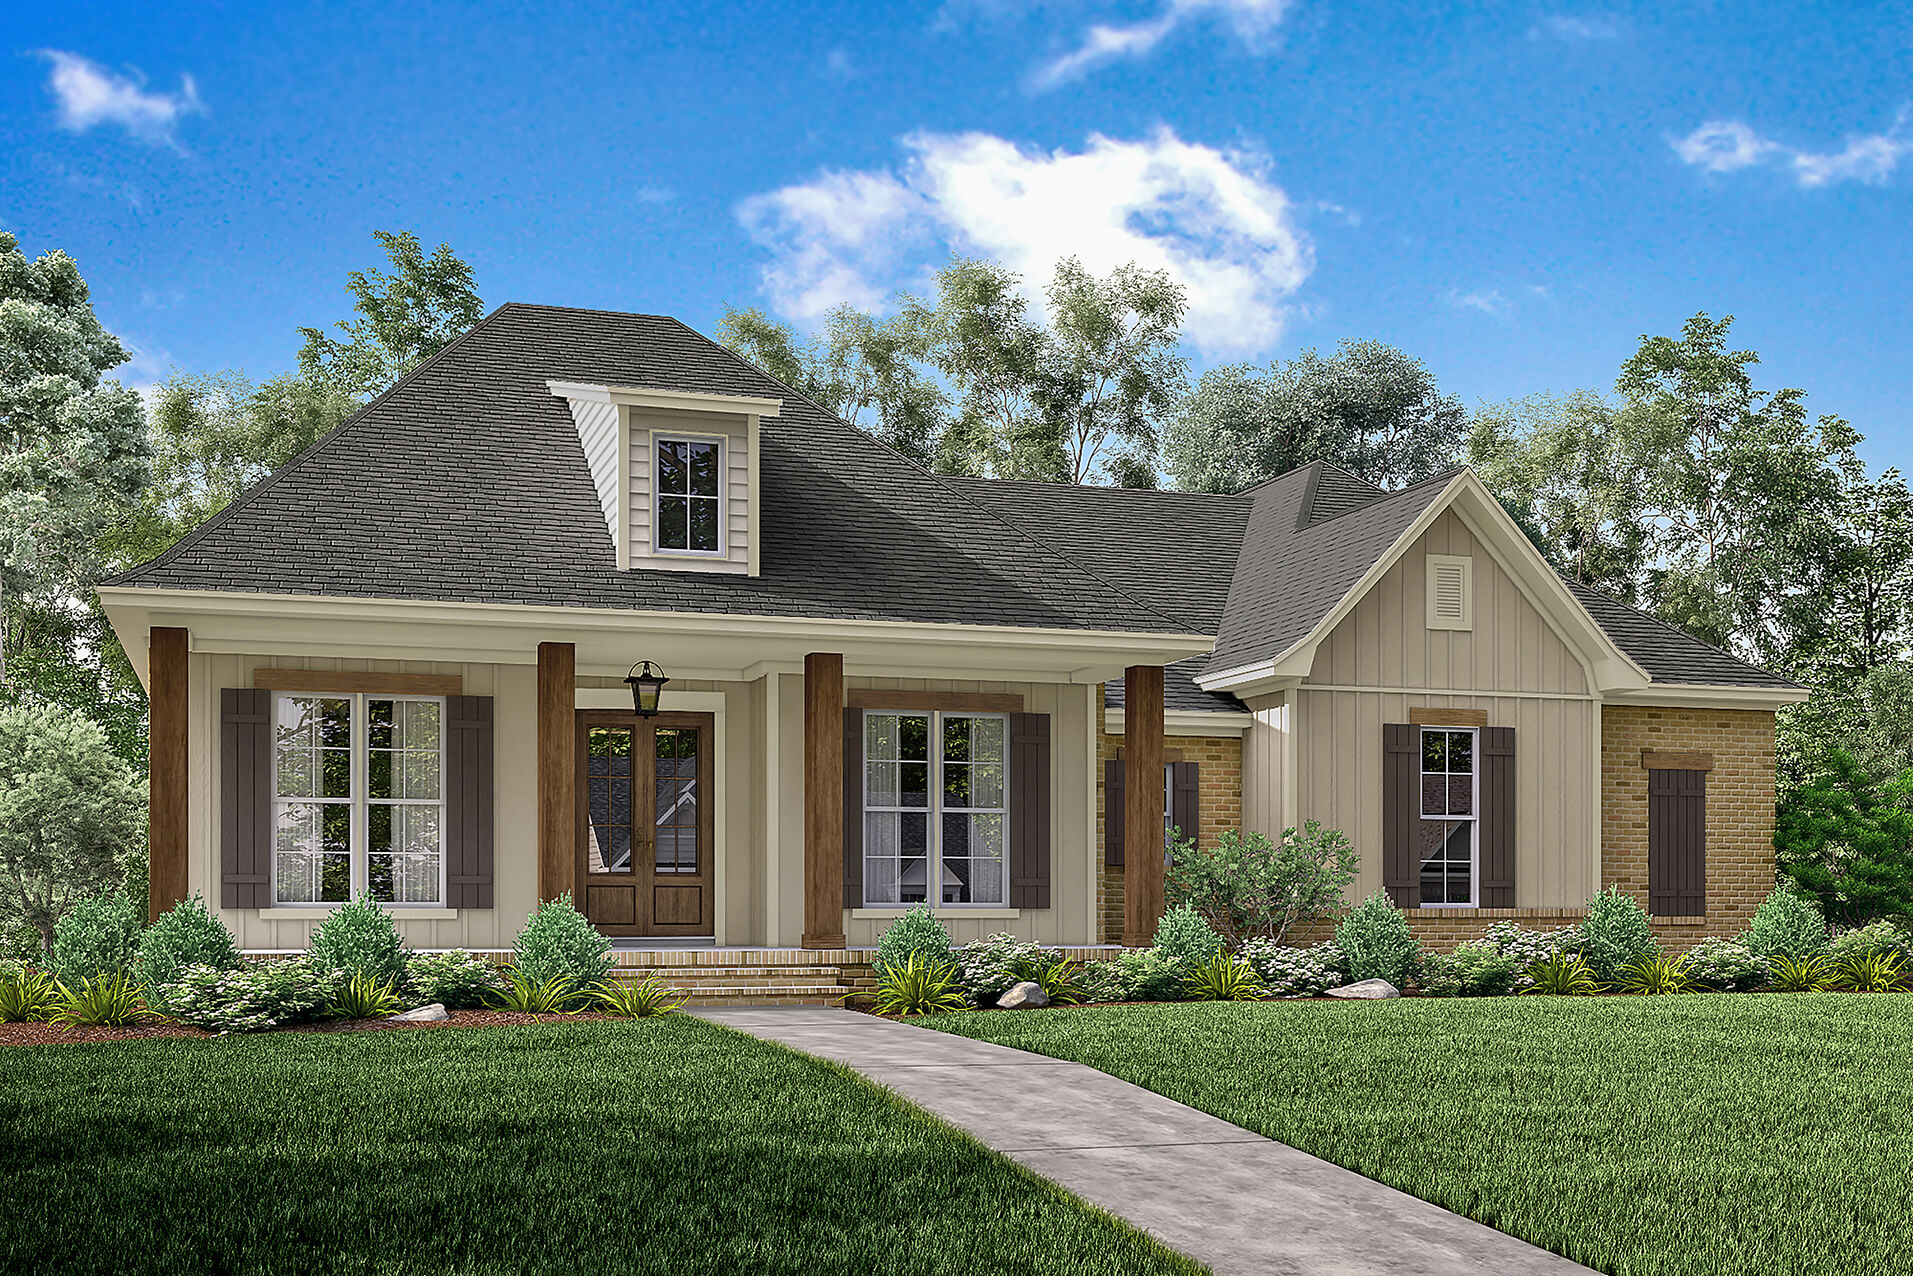 3 bedrm 1900 sq ft acadian house plan 142 1163 for House eplans